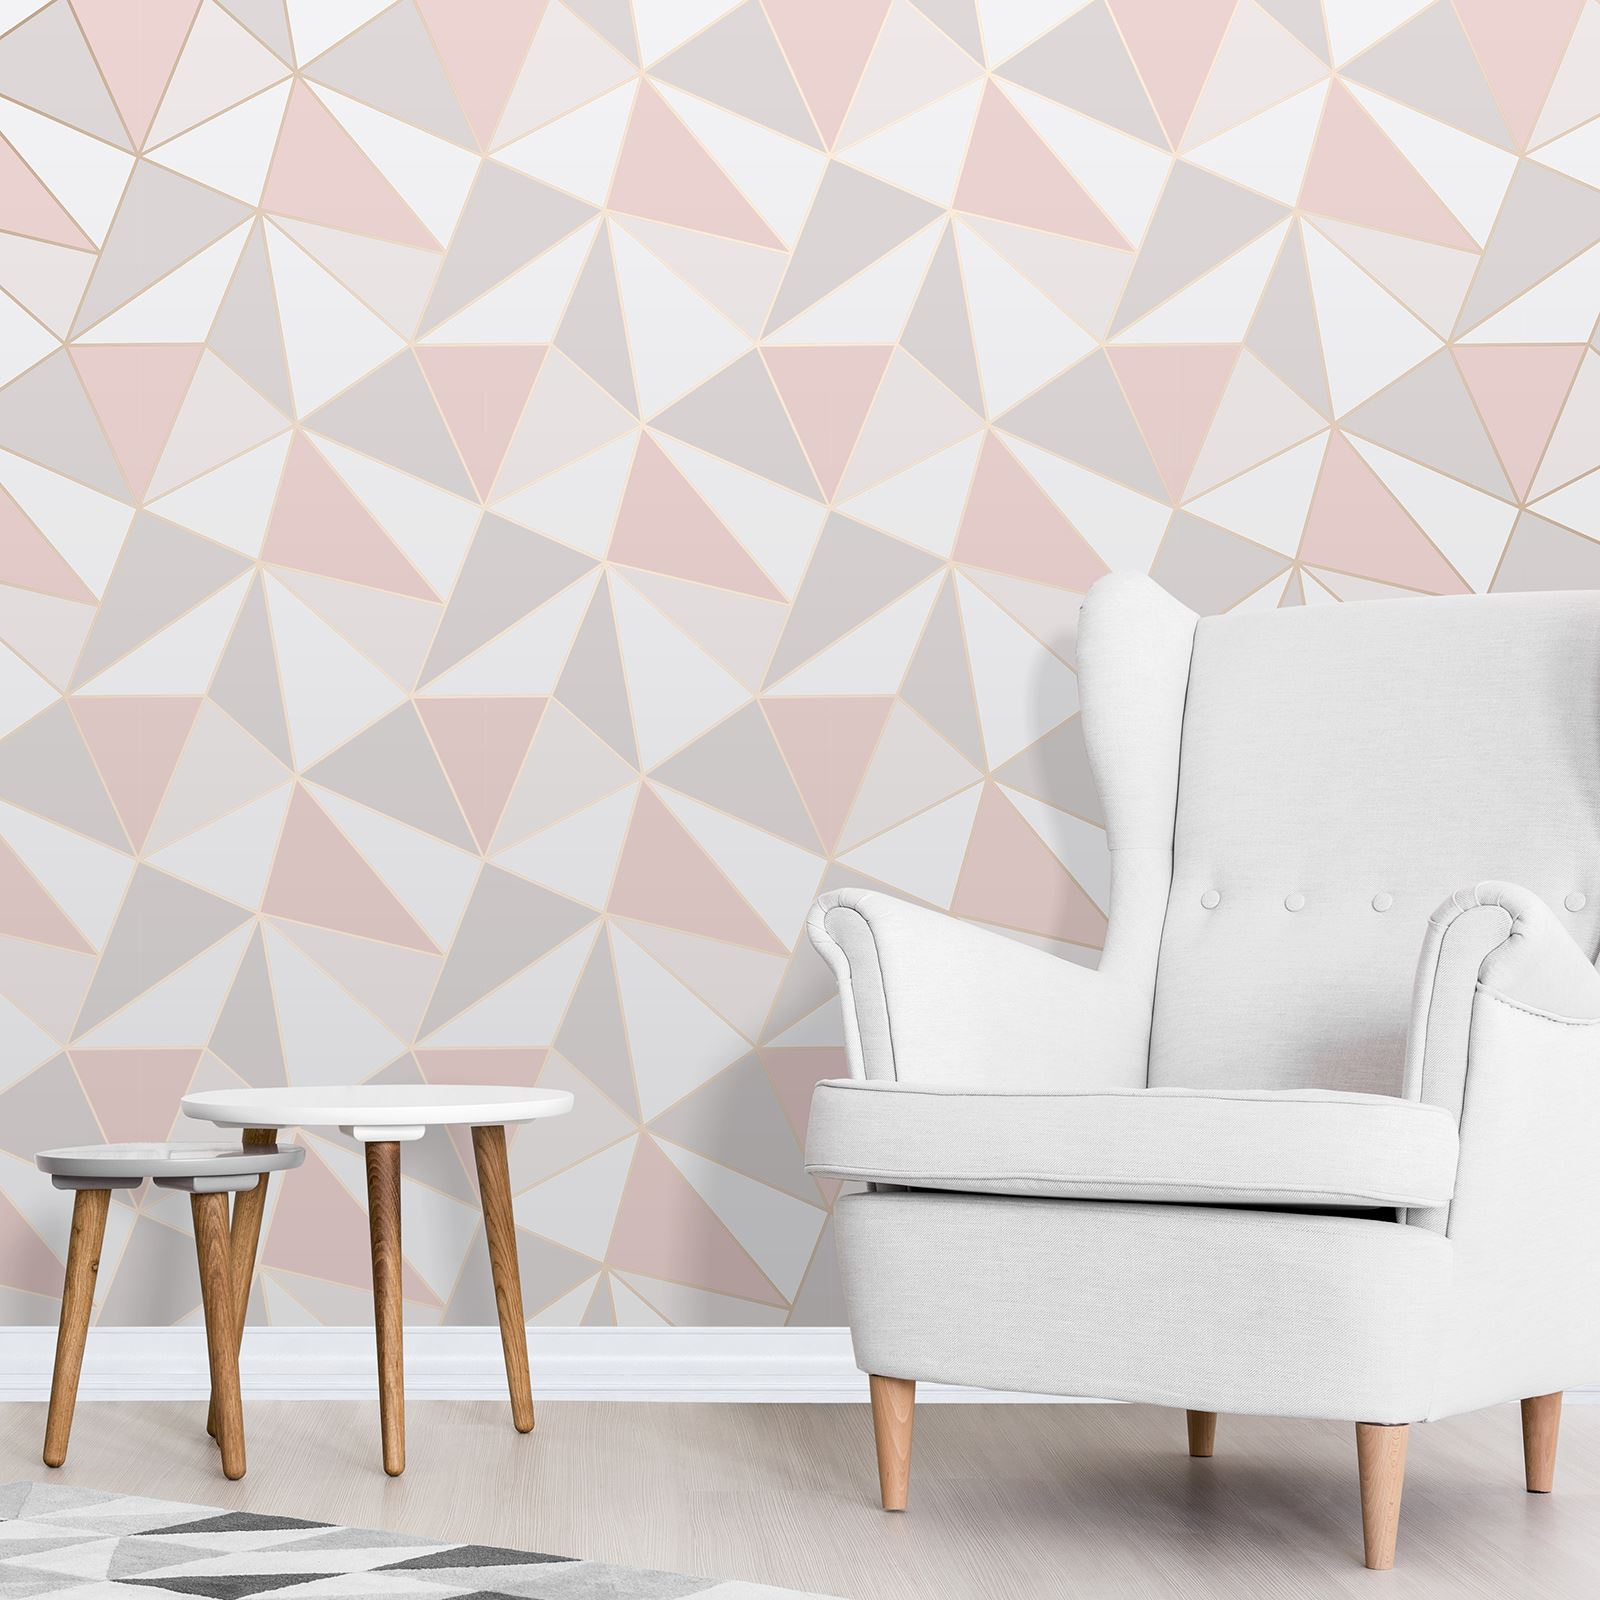 Apex geometric wallpaper rose gold pink fine decor for Wallpaper decoration for bedroom